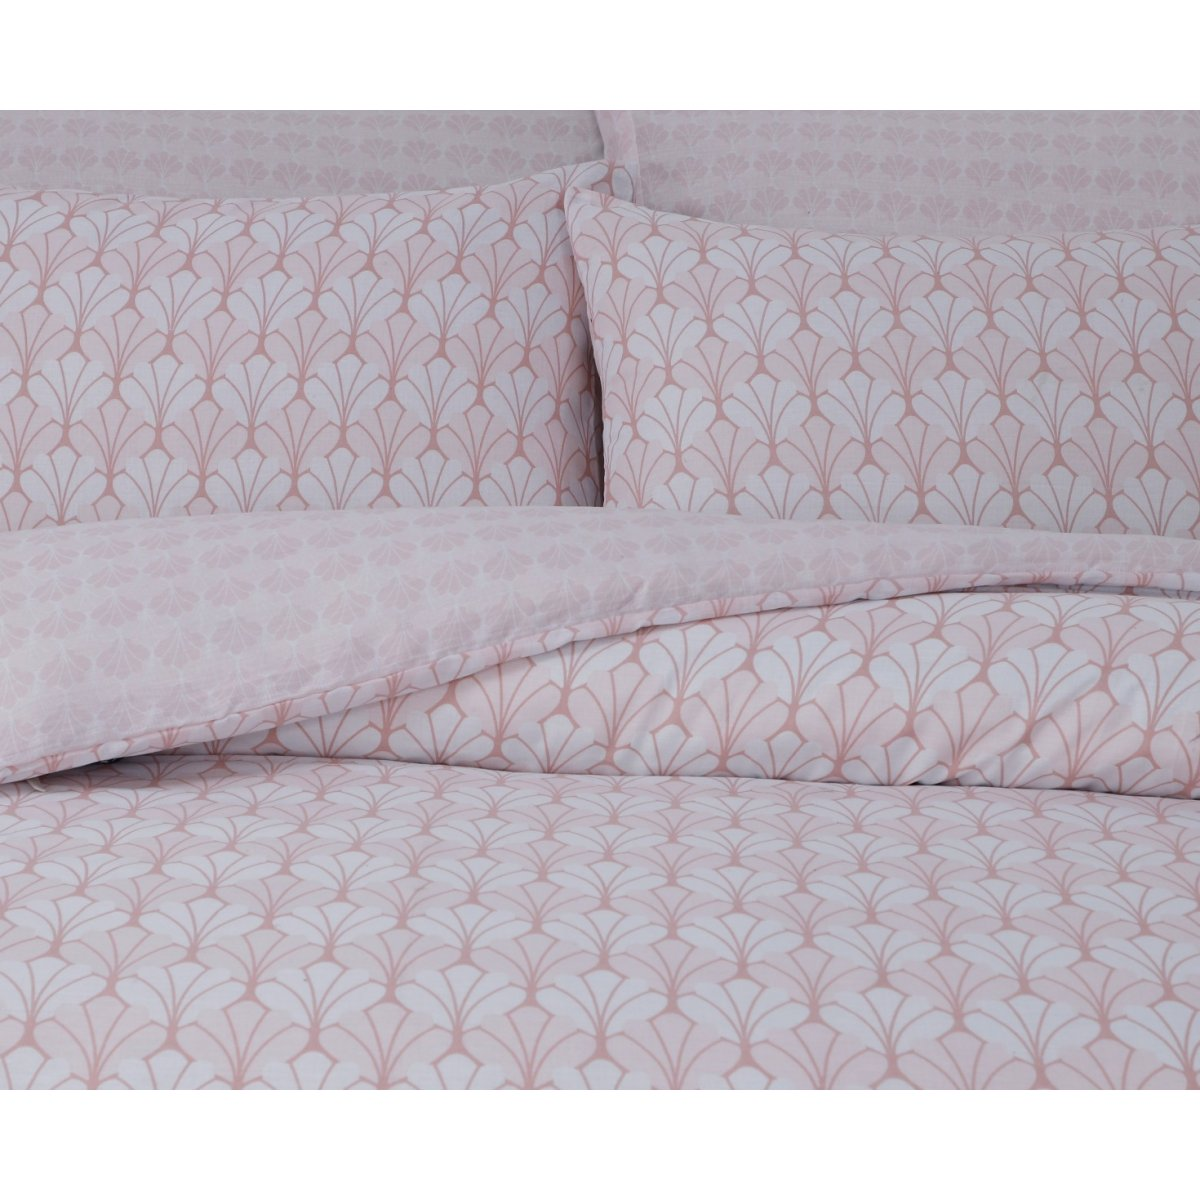 Scallop Blush Bedding - Reversible Duvet Cover and Pillowcase Set